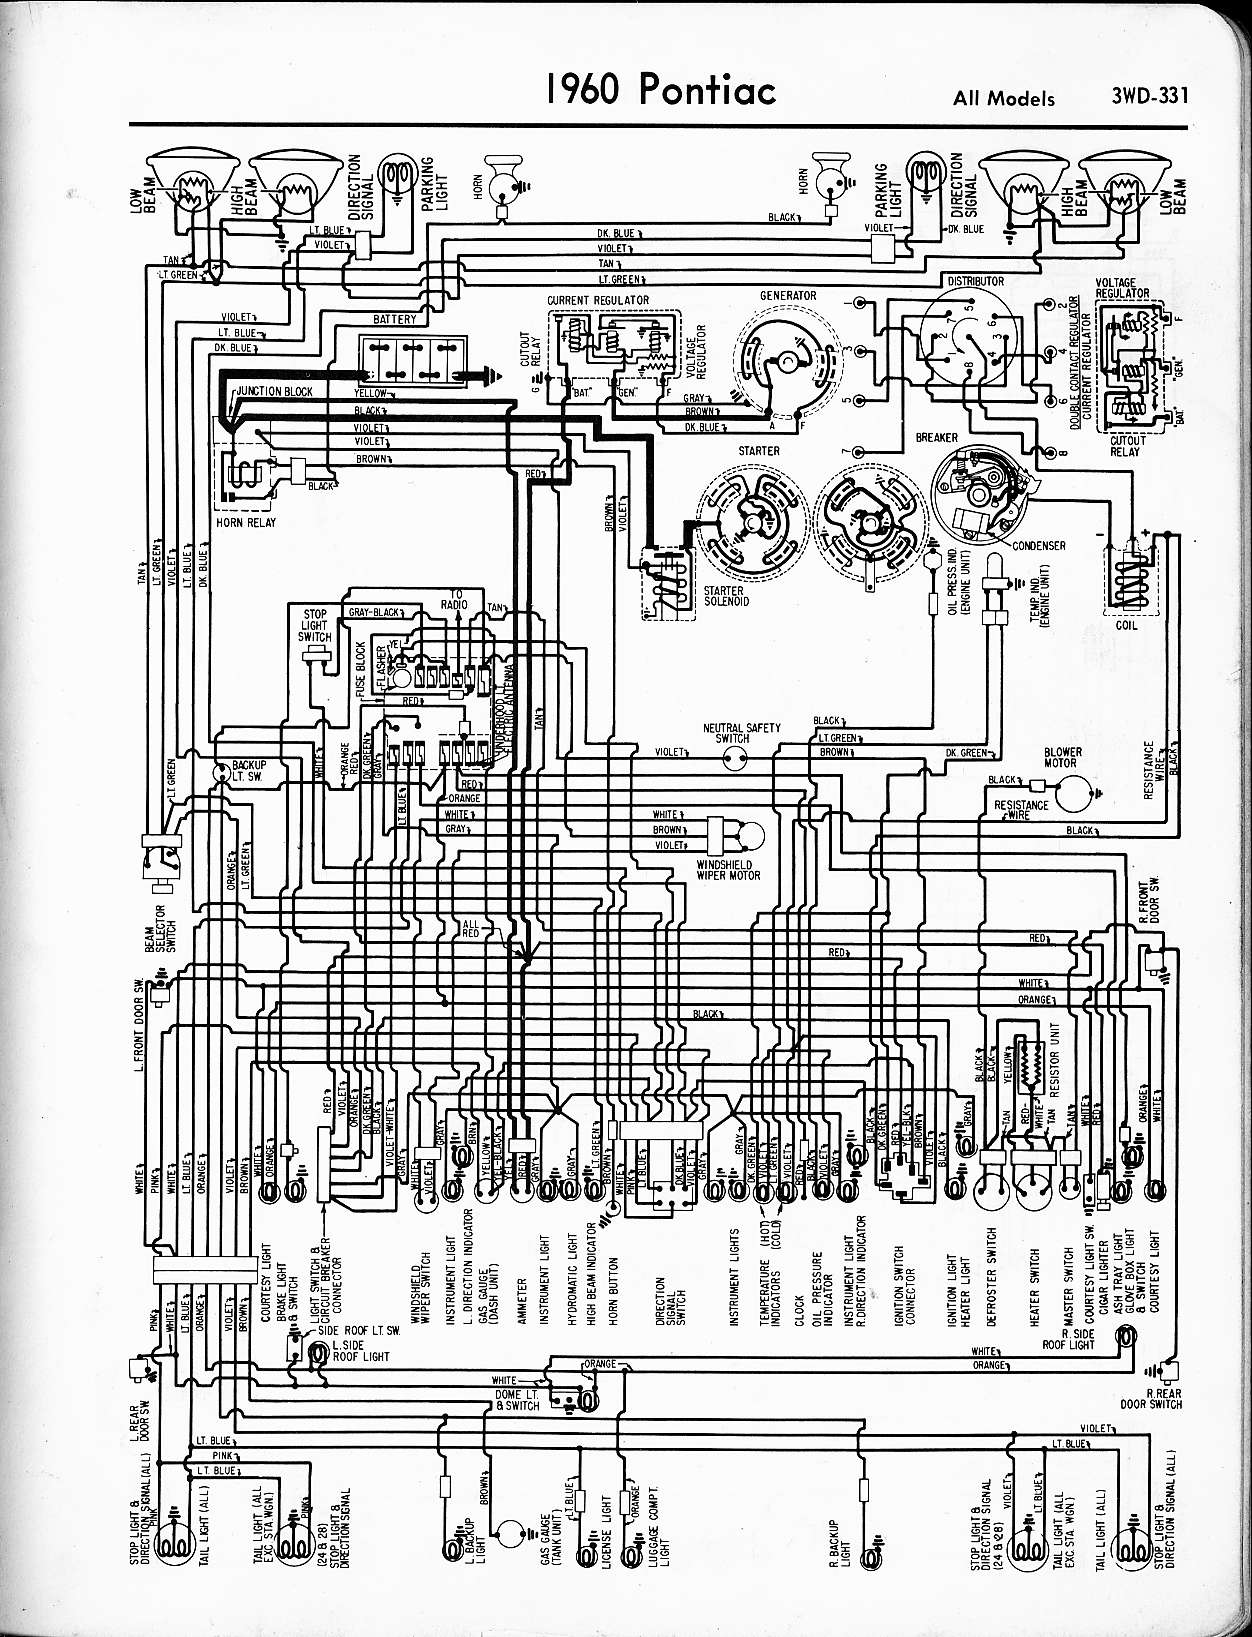 1956 pontiac wiring diagram wire center u2022 rh aktivagroup co Pontiac Grand Prix Wiring Diagrams Pontiac Bonneville Wiring-Diagram